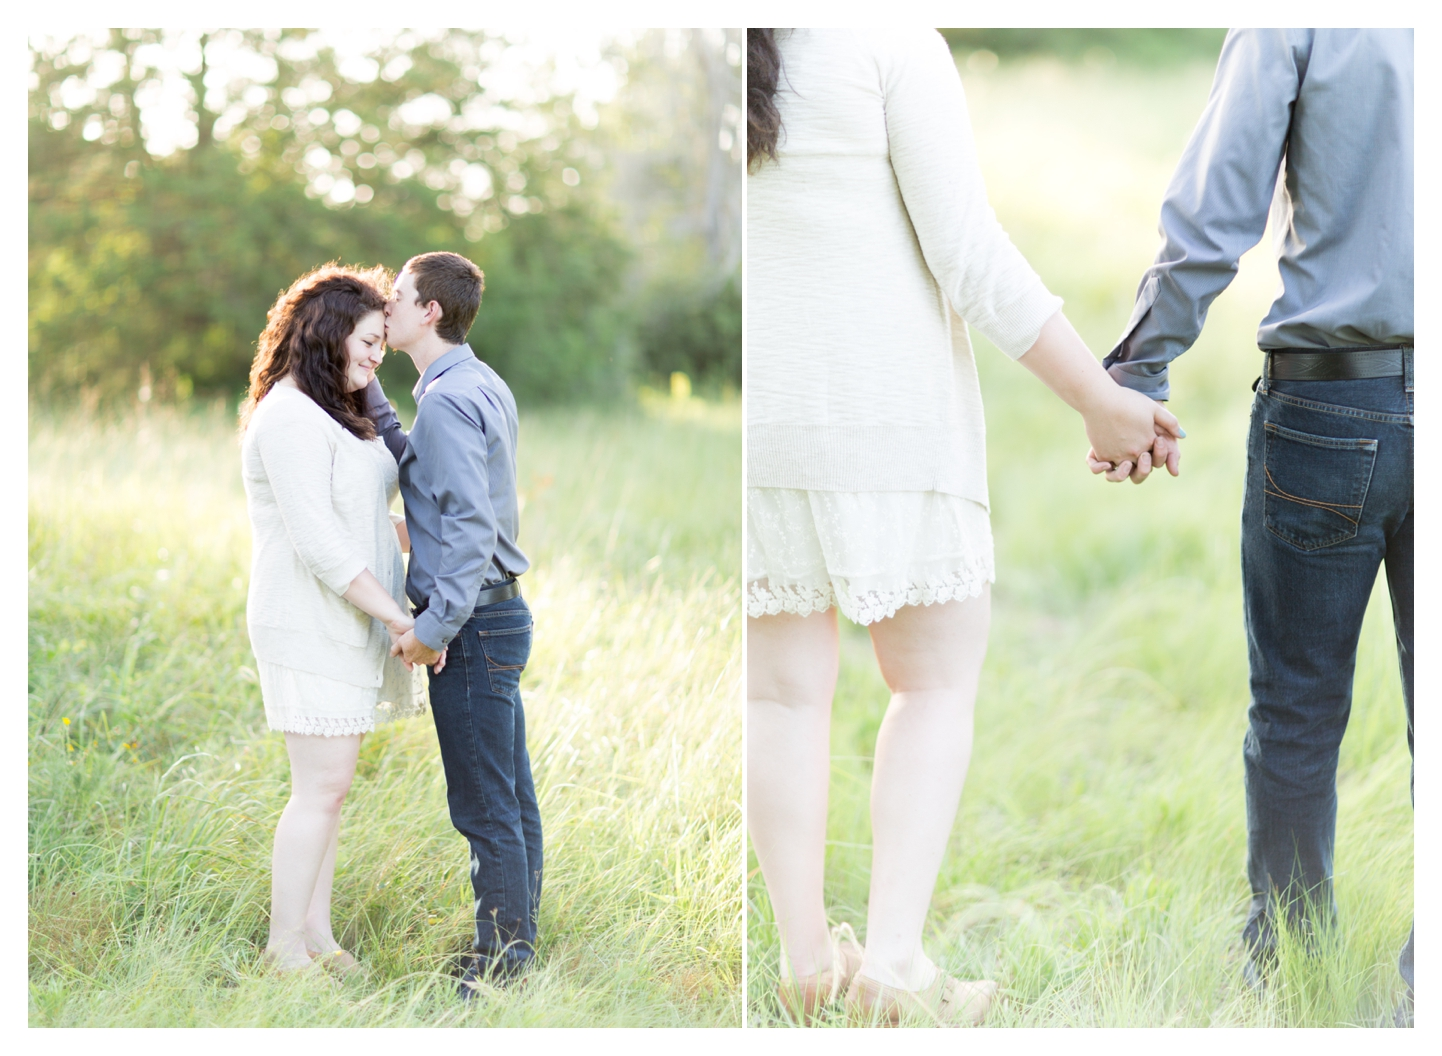 Joe+Elizabeth Tx Engagements-54.jpg